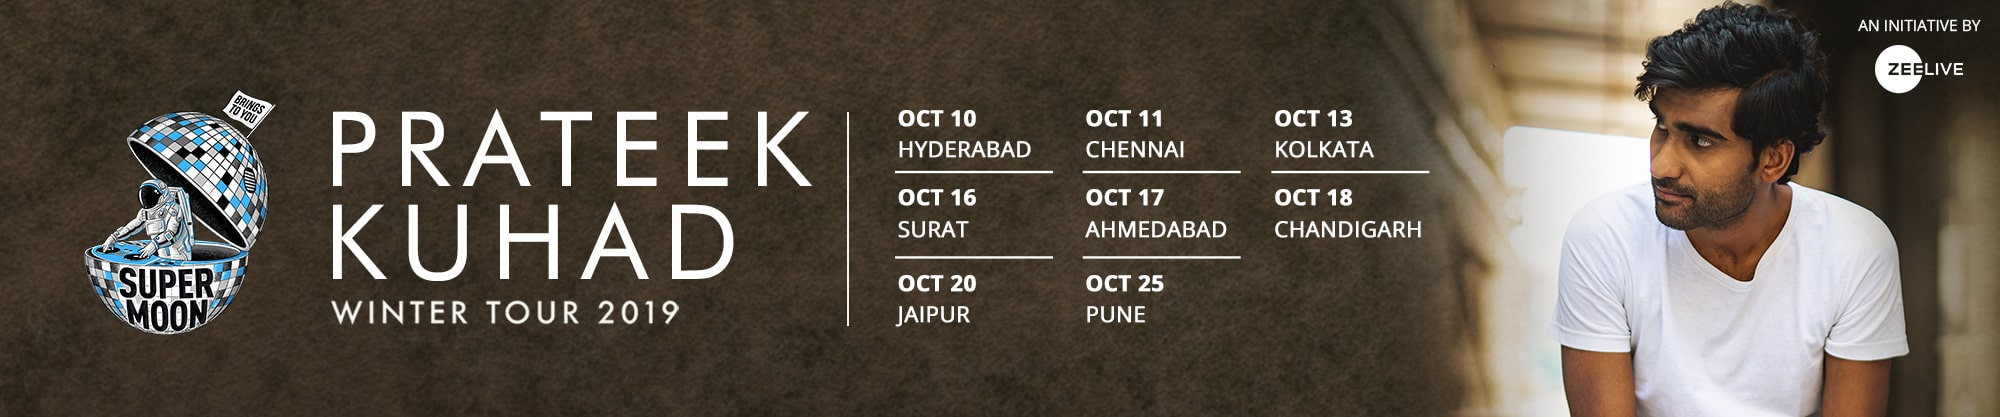 Prateek Kuhad Winter Tour